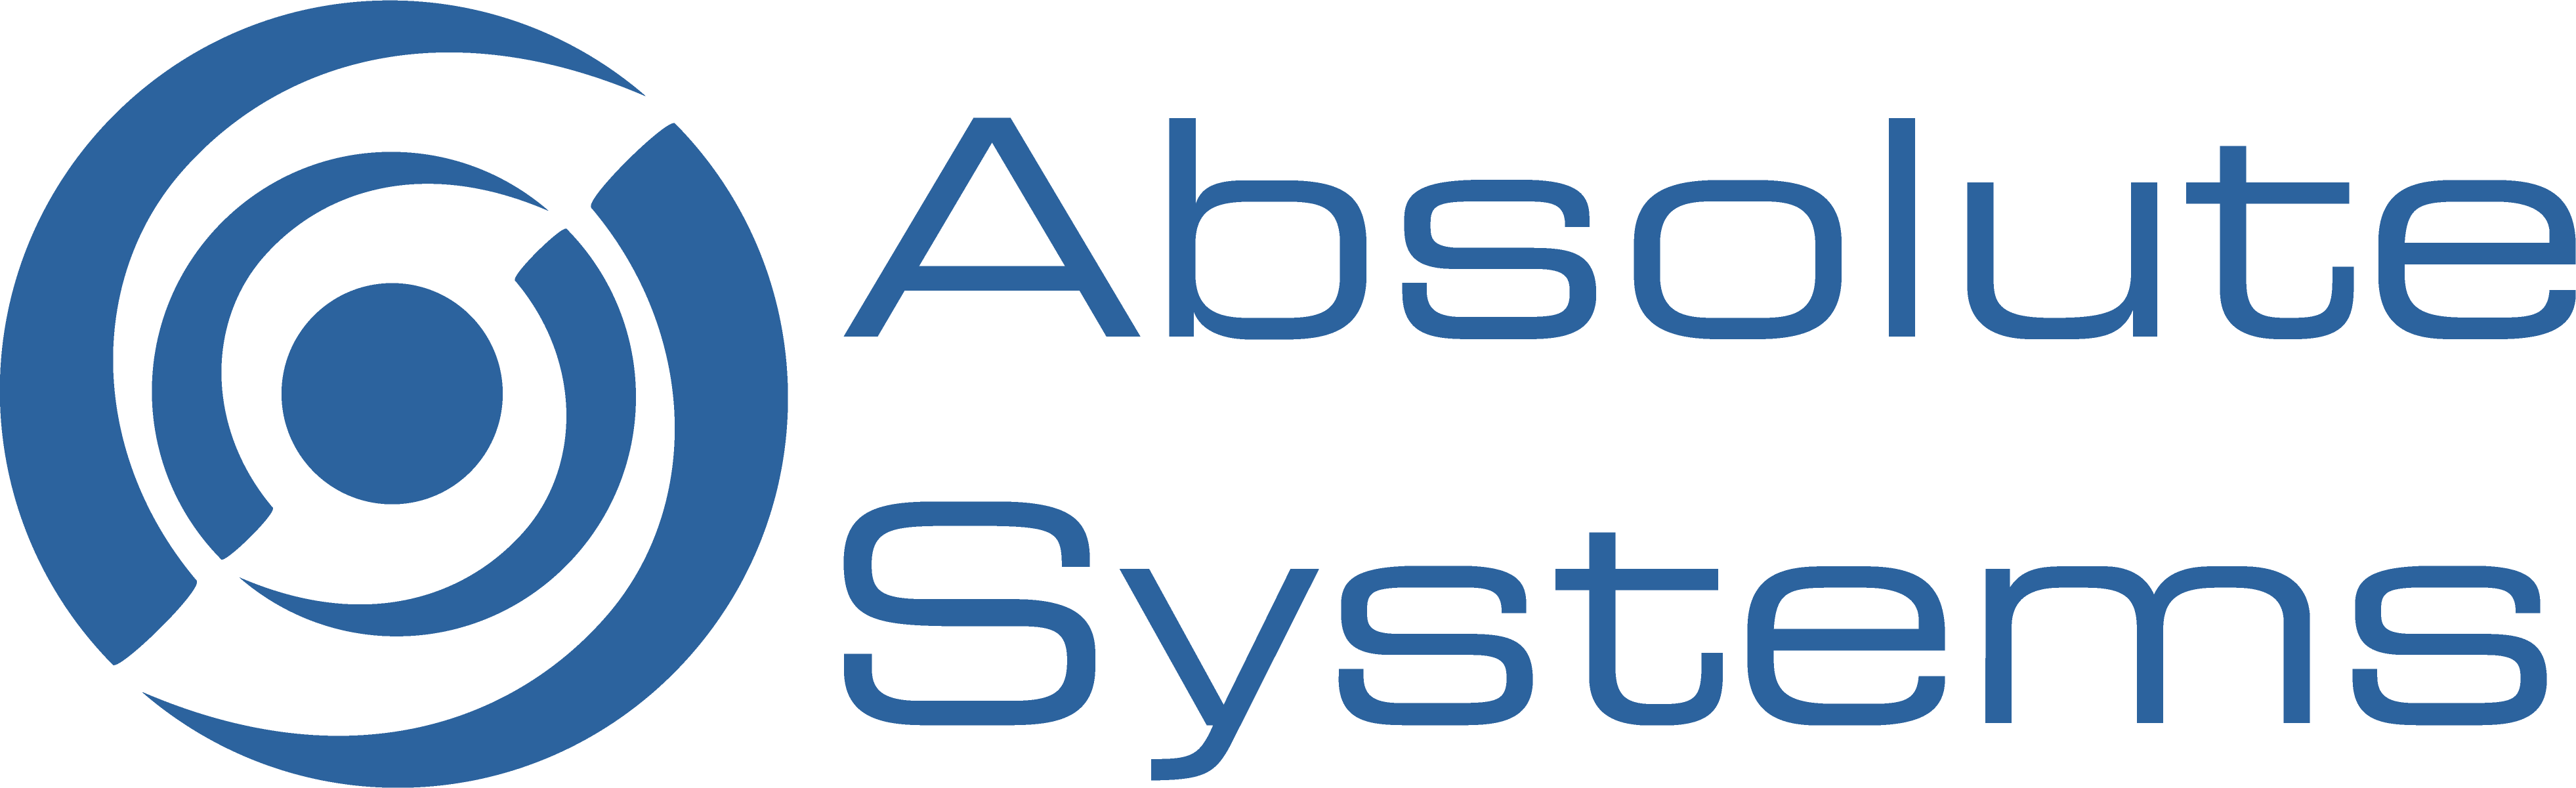 Absolute Systems Logo